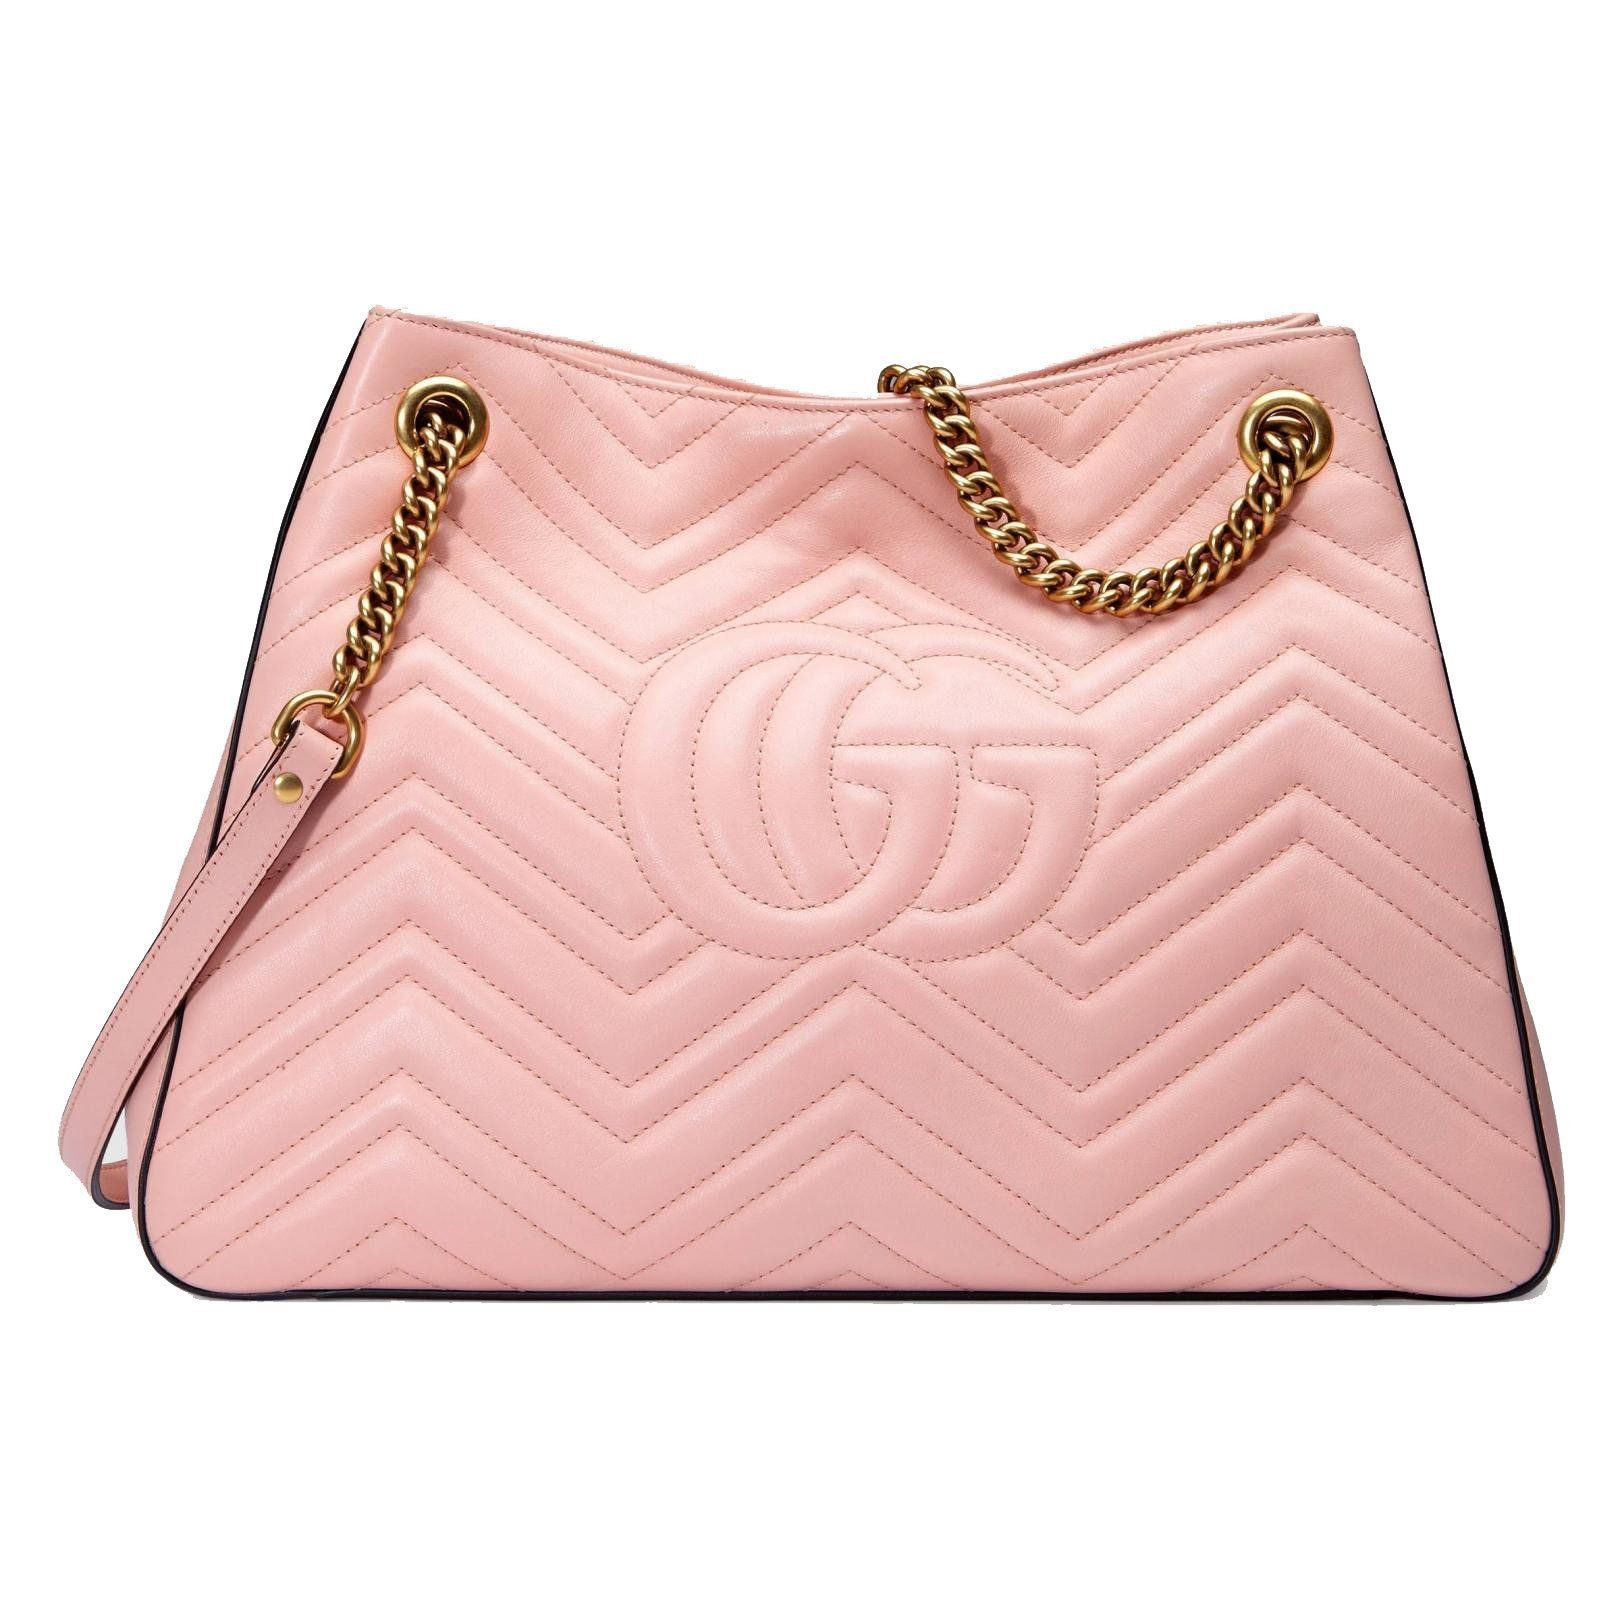 GUCCI Marmont GG Chevron Pink Leather Shoulder Bag 453569 in 2019 ... 7024257662401